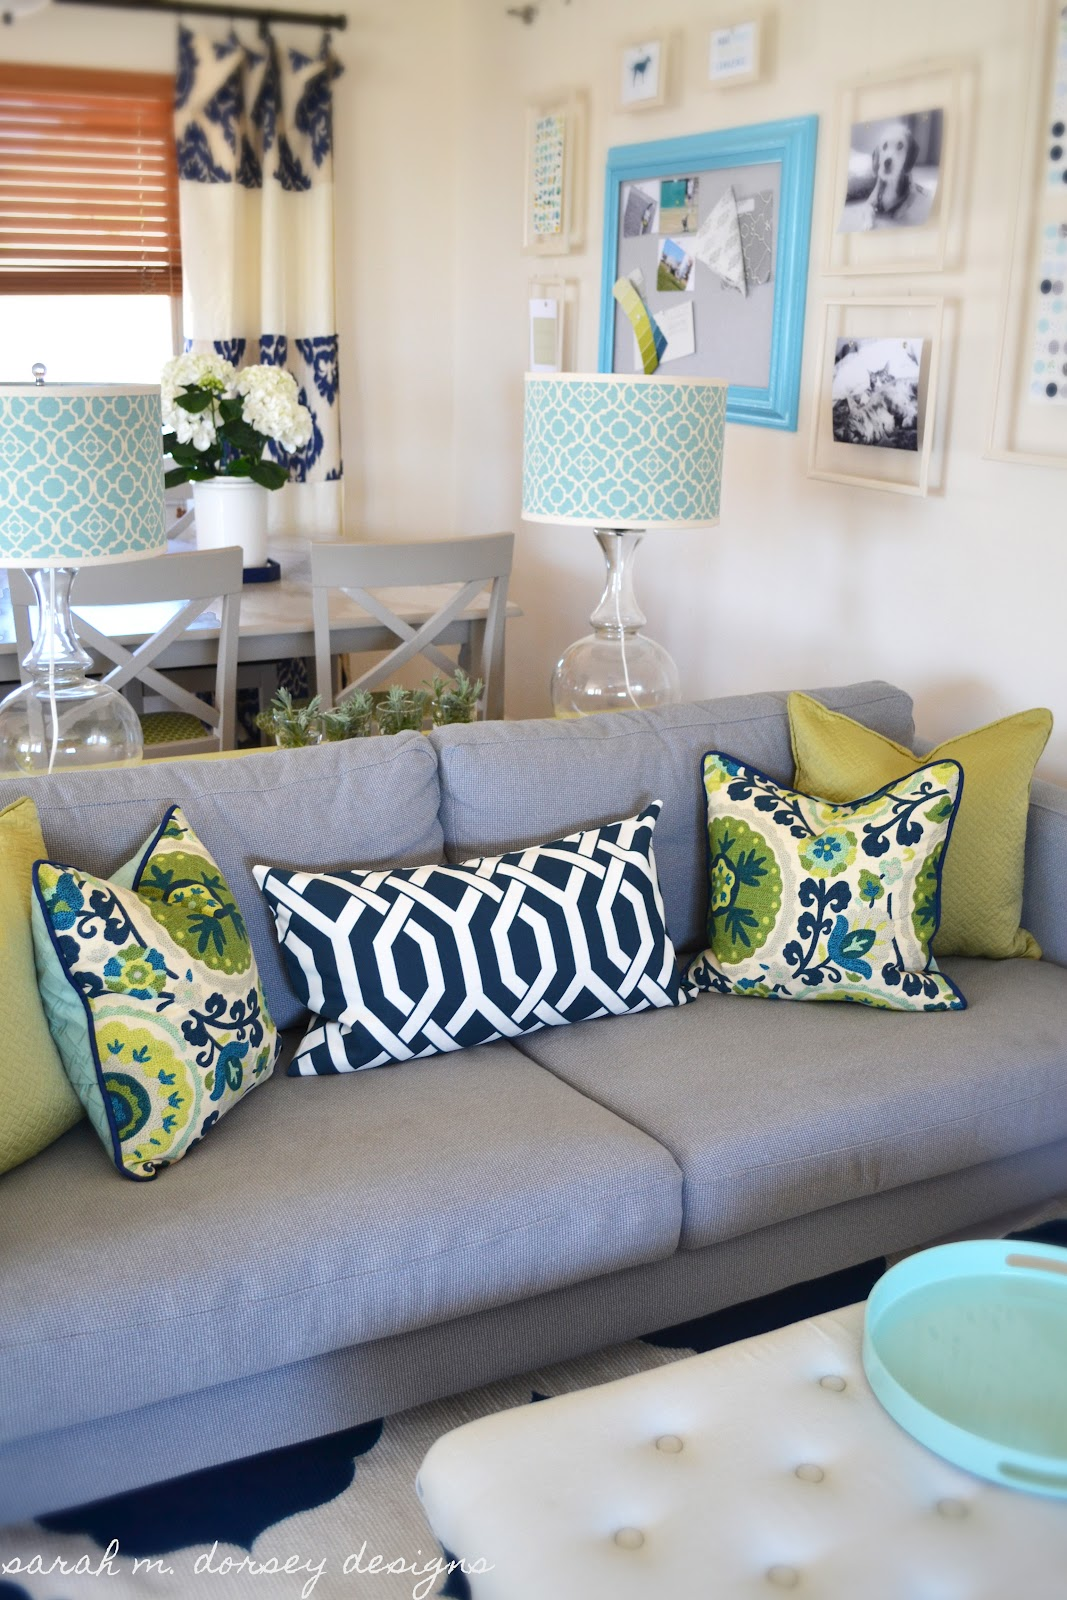 sofa pillow design ideas latest models sarah m dorsey designs shams for the living room